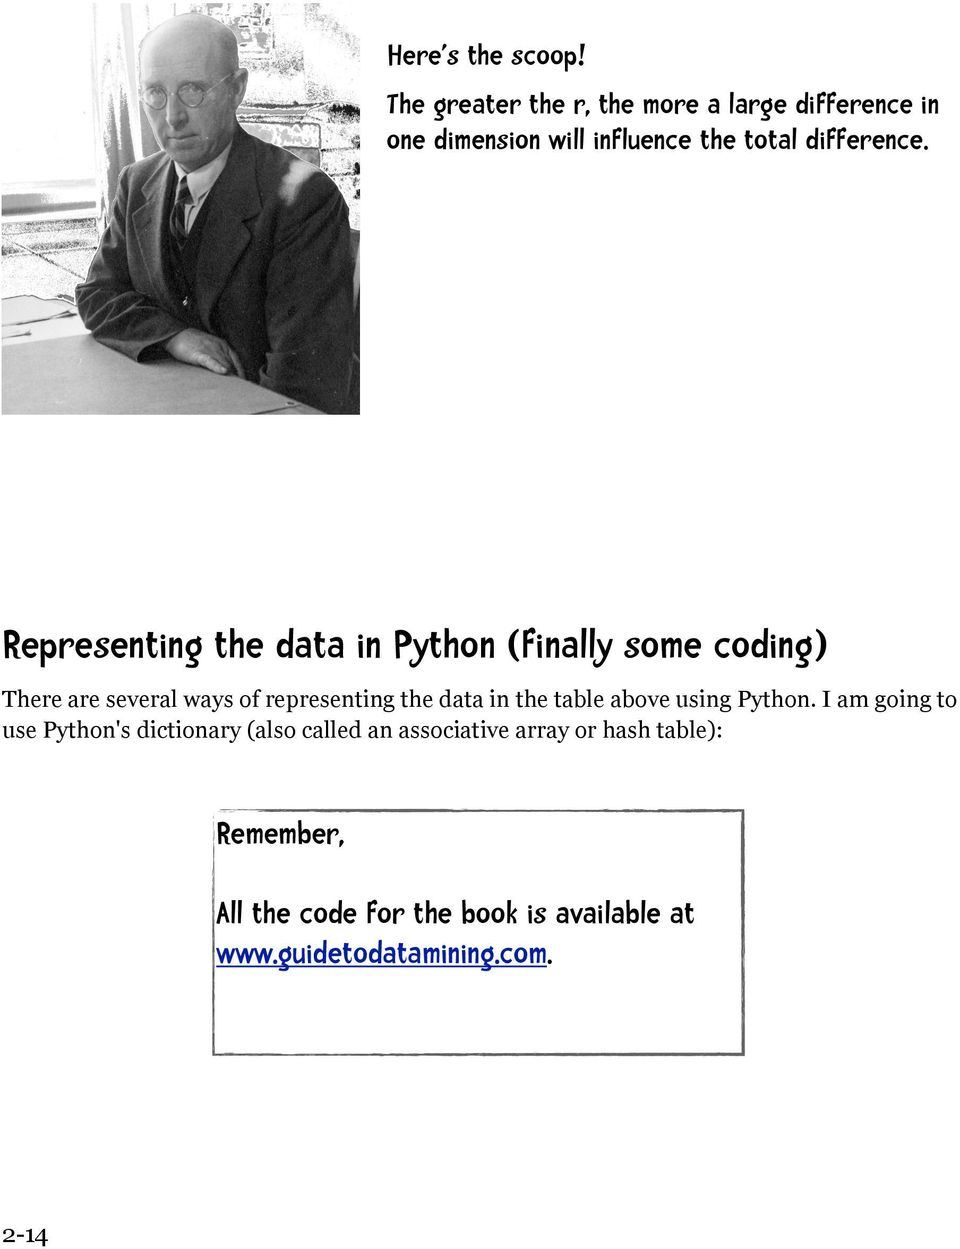 Representing the data in Python (finally some coding) There are several ways of representing the data in